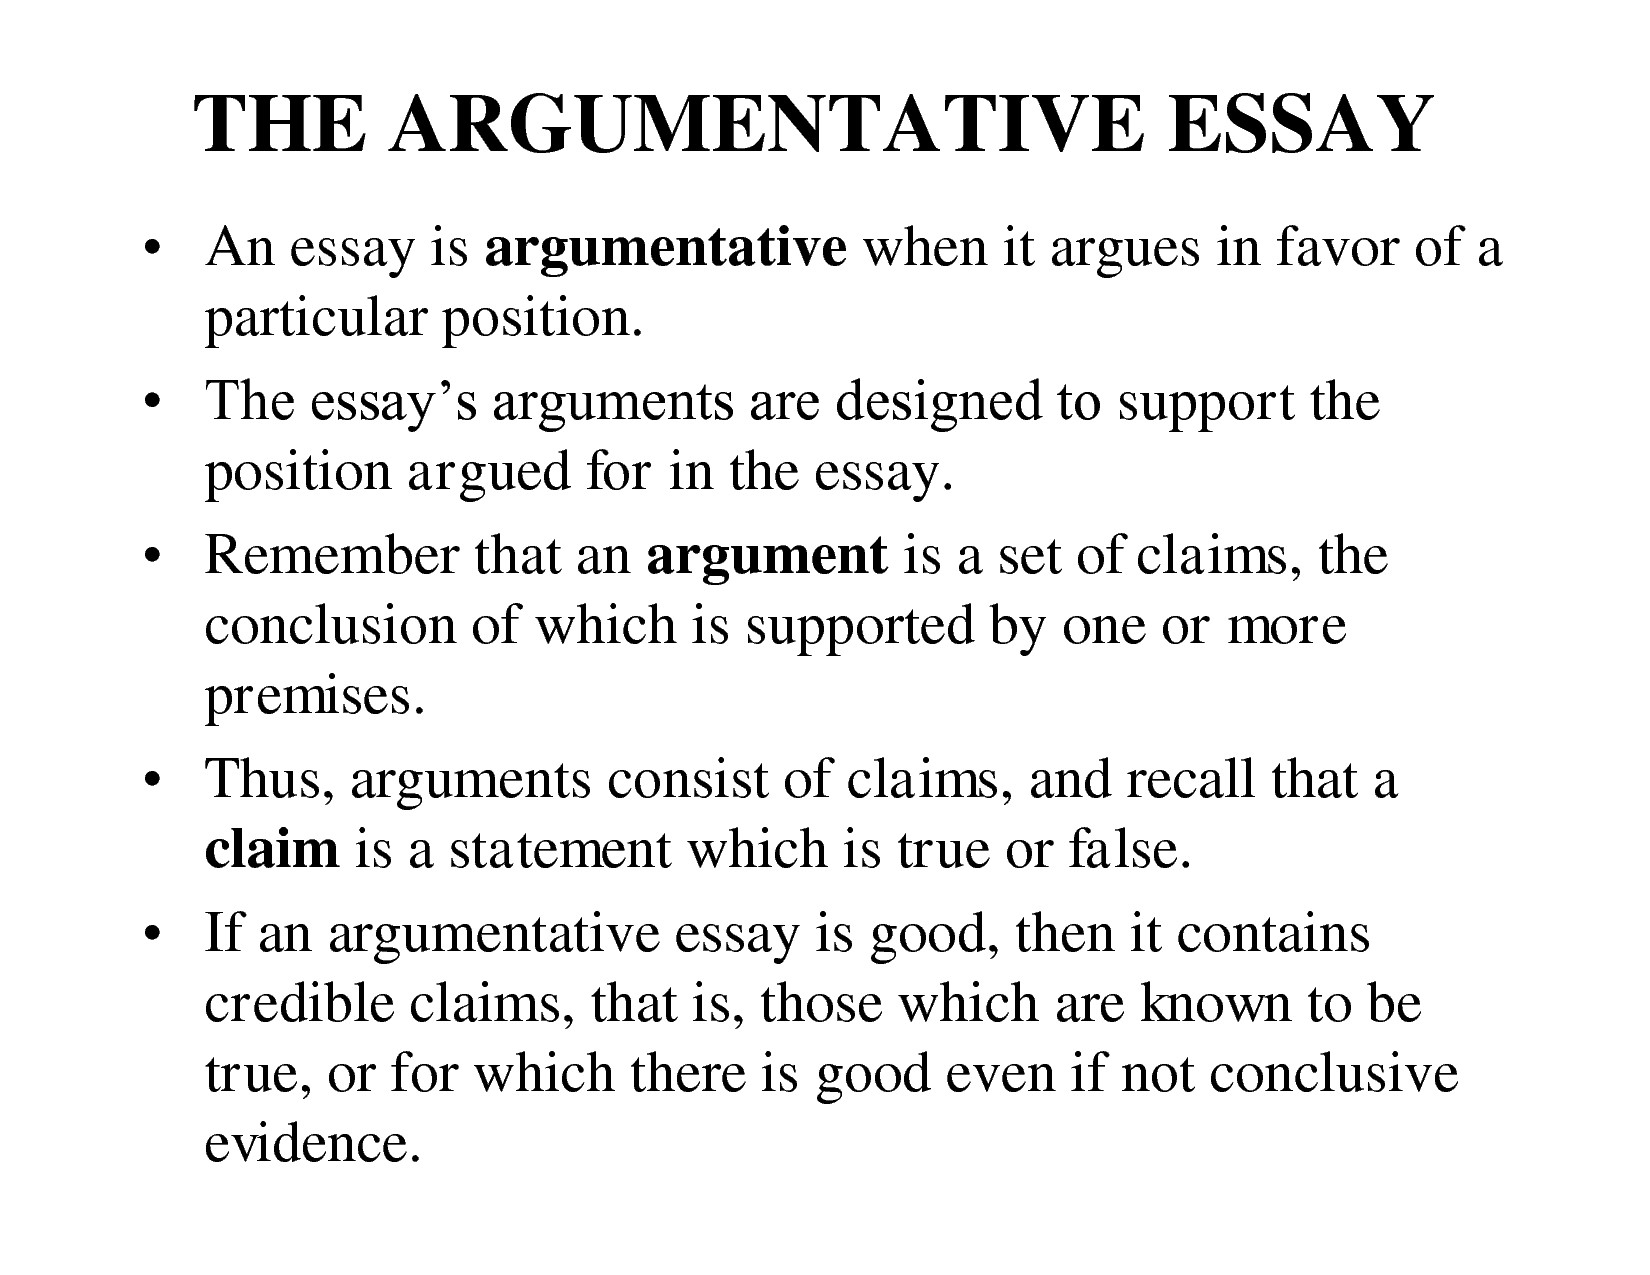 001 How To Write Good Conclusion For An Essay Exampleentative World Of Concluding Paragraph Persuasive Gse Bookbinder Co Rega Examples Impressive A Argumentative Really Opinion Full